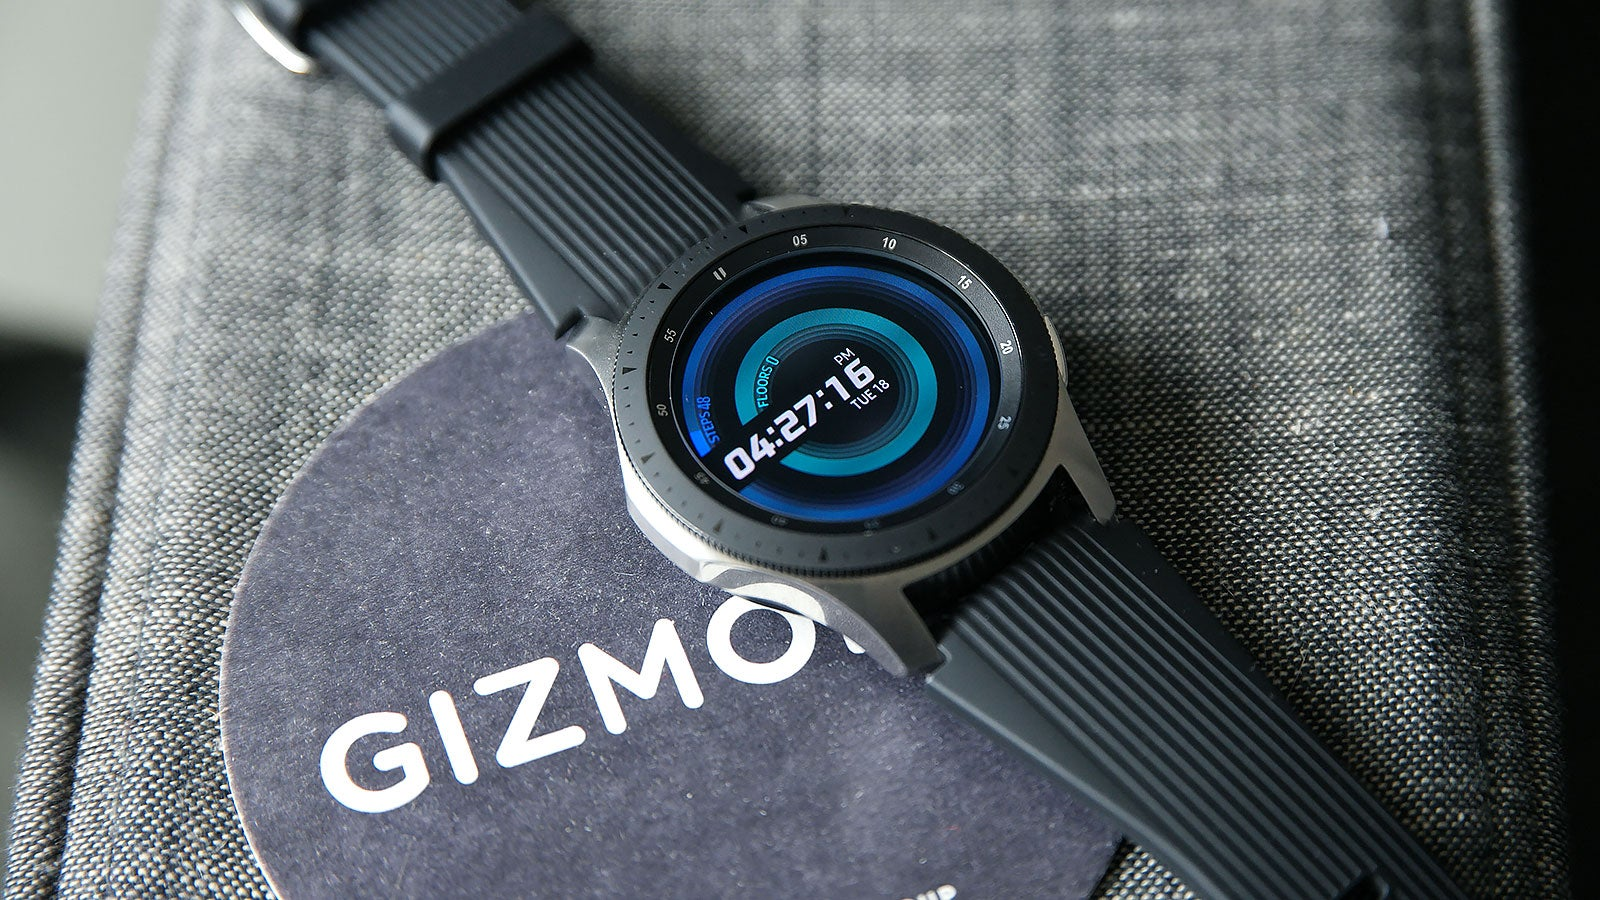 Samsung's Next Smartwatch Better Not Look Like This